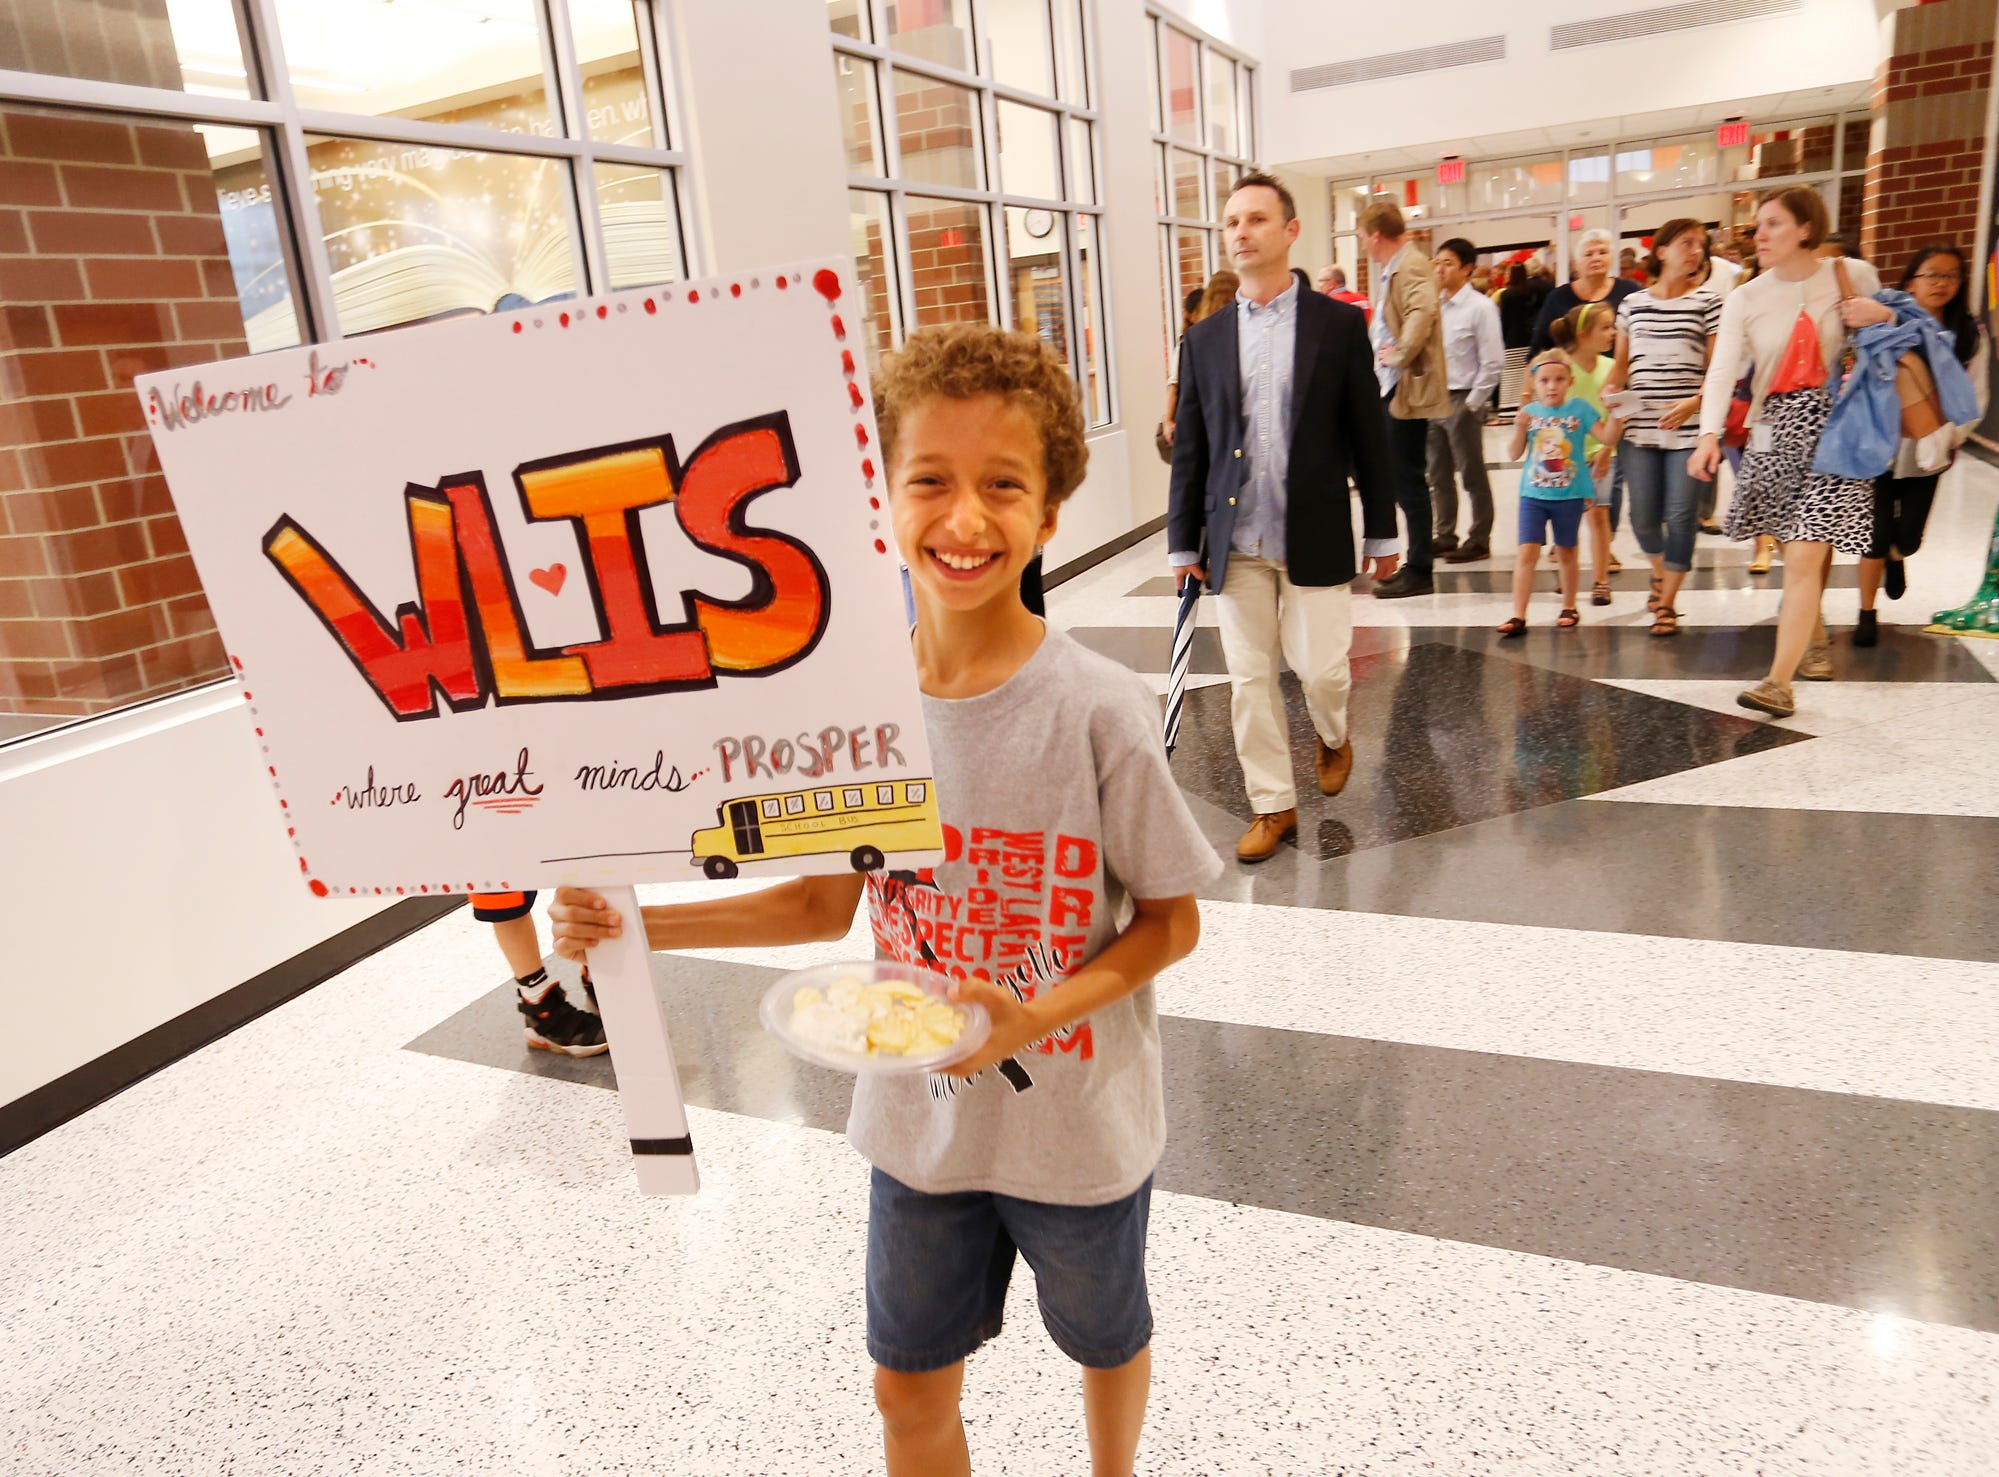 Annas Al-Dubayan, 11, carries a sign as he walks the halls of West Lafayette Intermediate School Wednesday, October 10, 2018, in West Lafayette. Located at Lindberg Road and Salisbury Street, West Lafayette Intermediate School is the first new school building in West Lafayette Community School Corporation since 1961. Al-Dubayan is a sixth grade student.